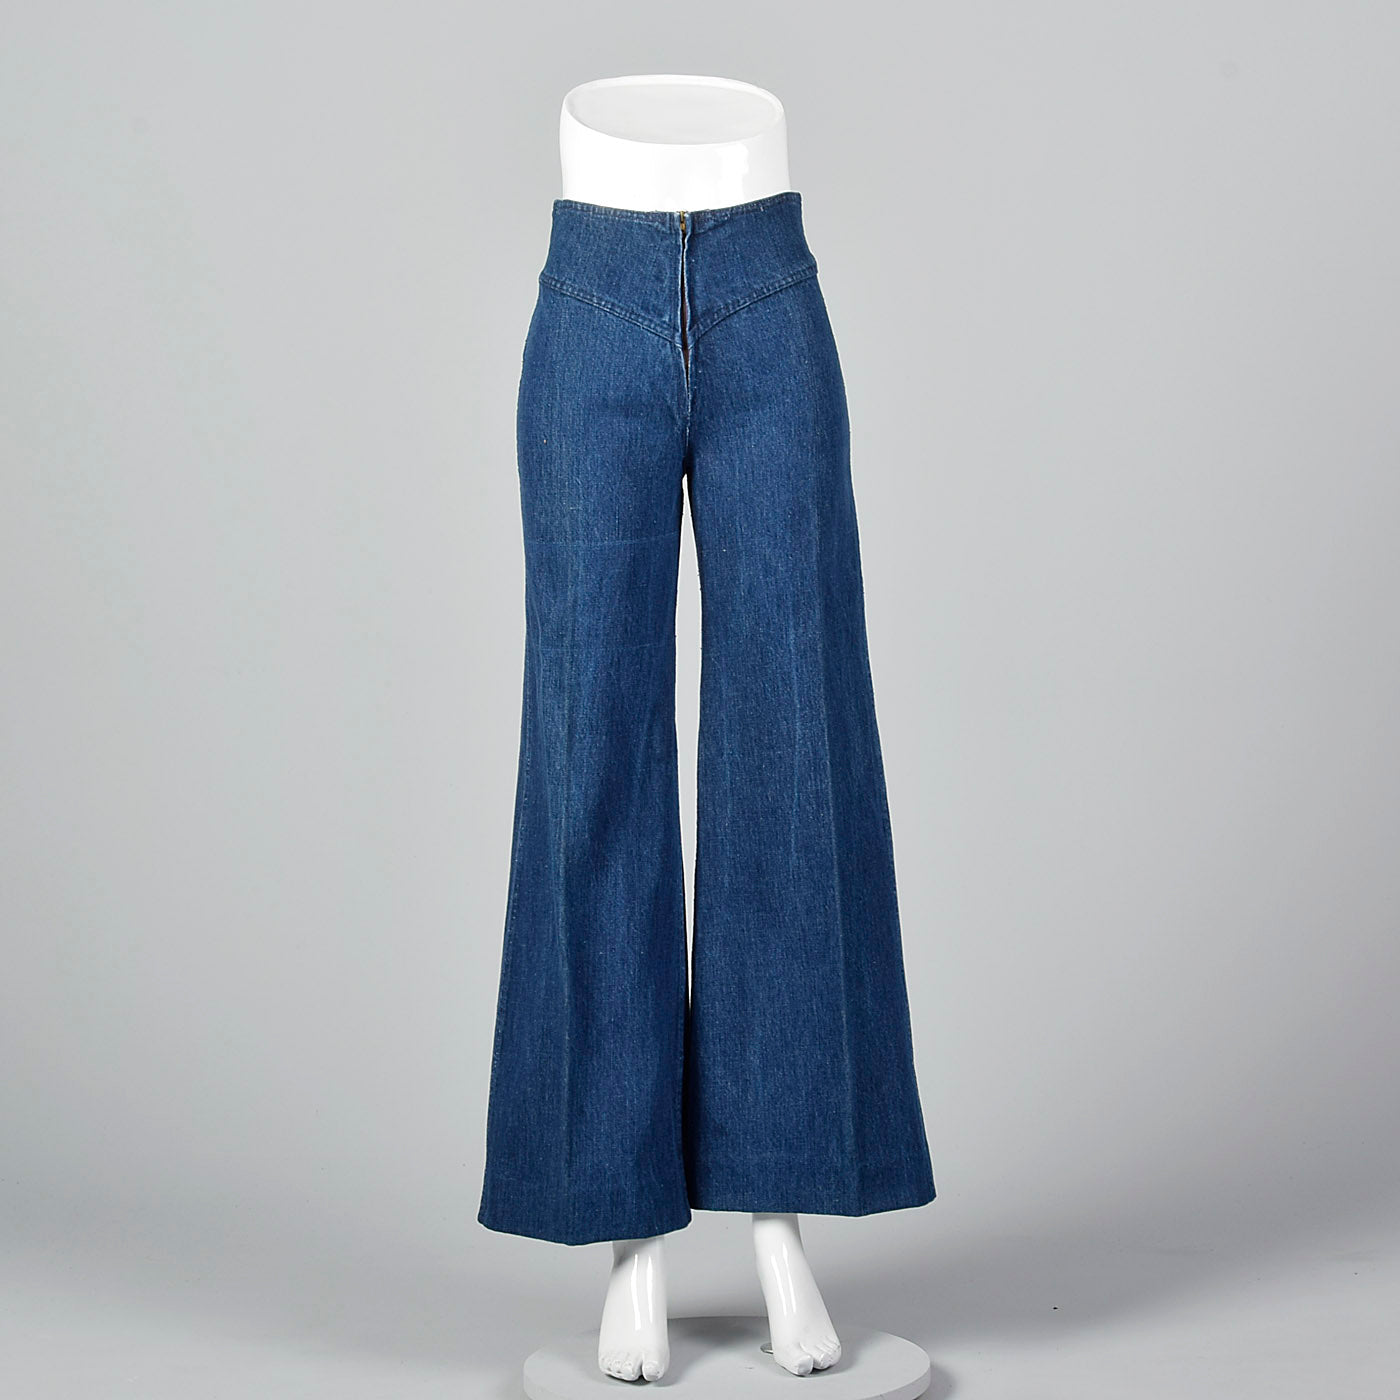 1970s Zip Front Bell Bottoms Cotton Denim